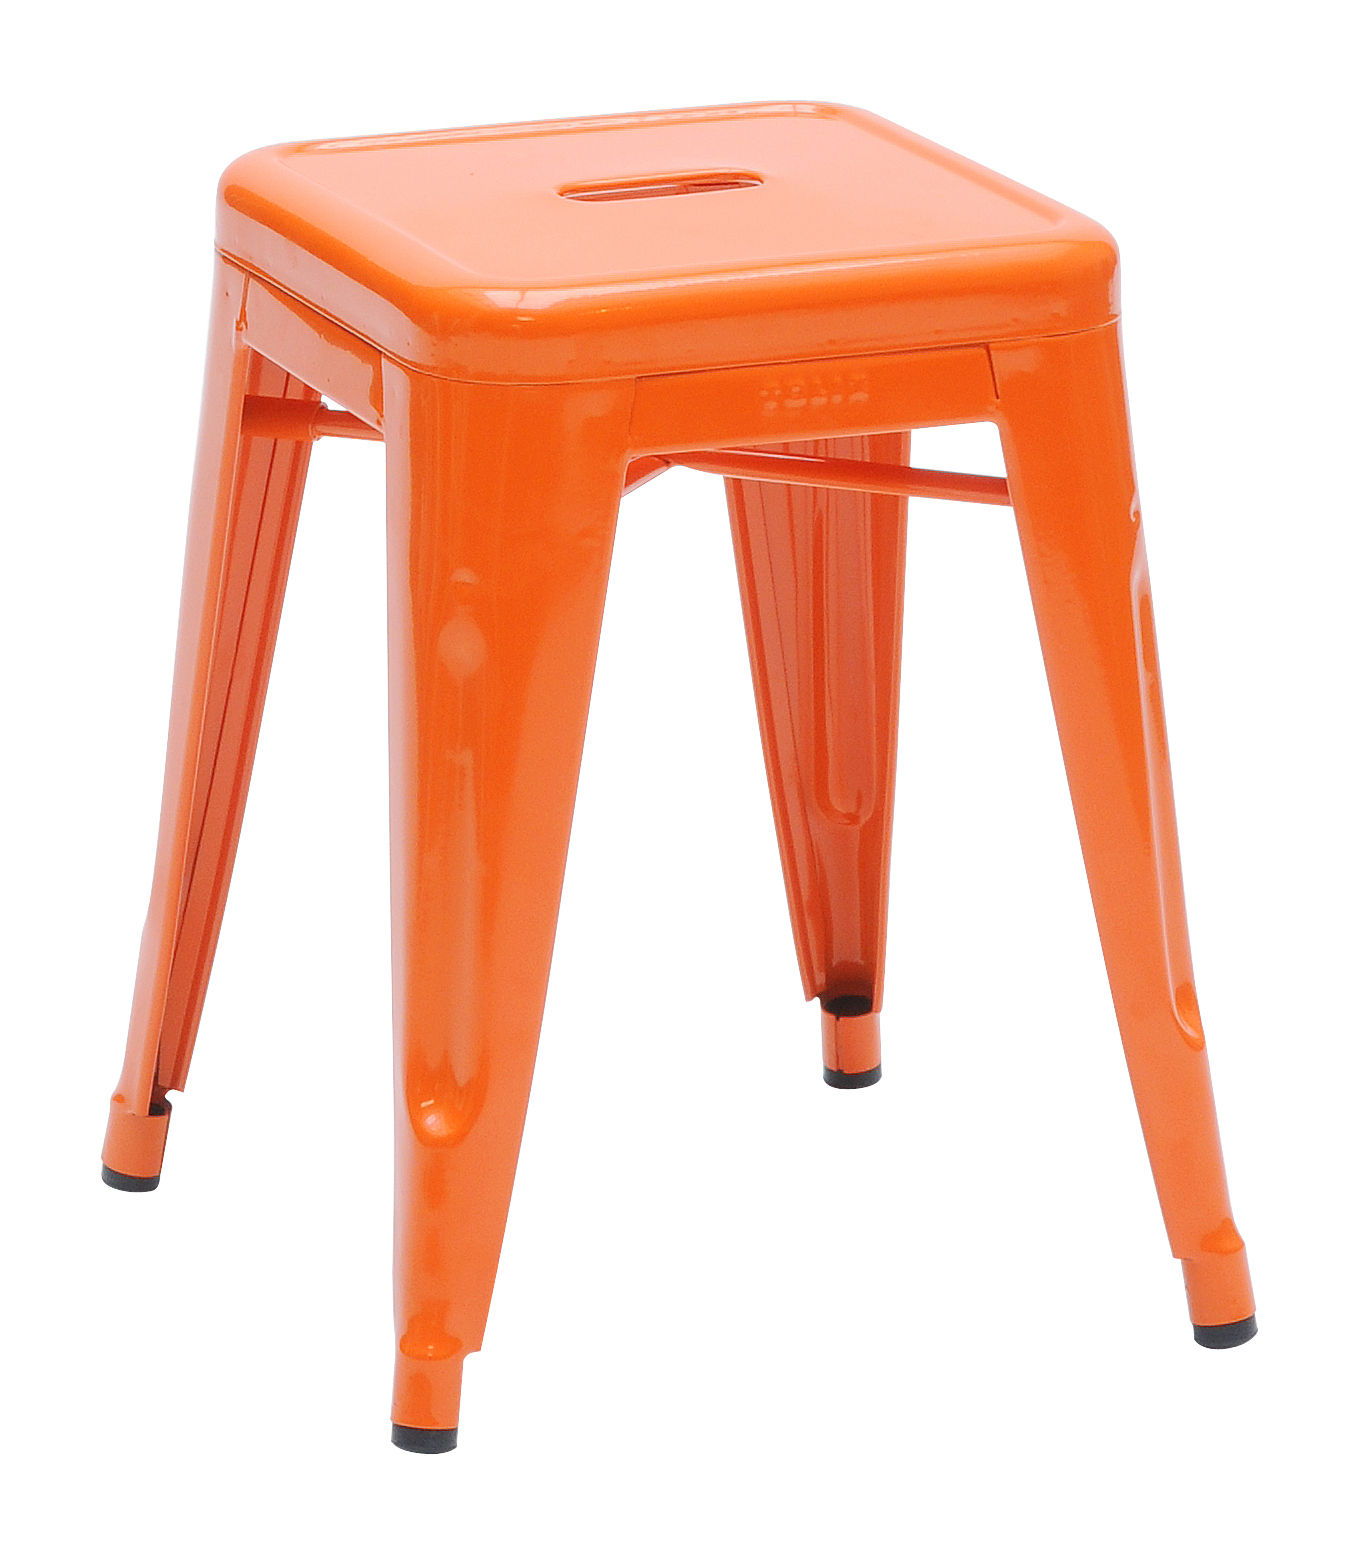 h stackable stool lacquered steel h 45 cm orange by tolix. Black Bedroom Furniture Sets. Home Design Ideas